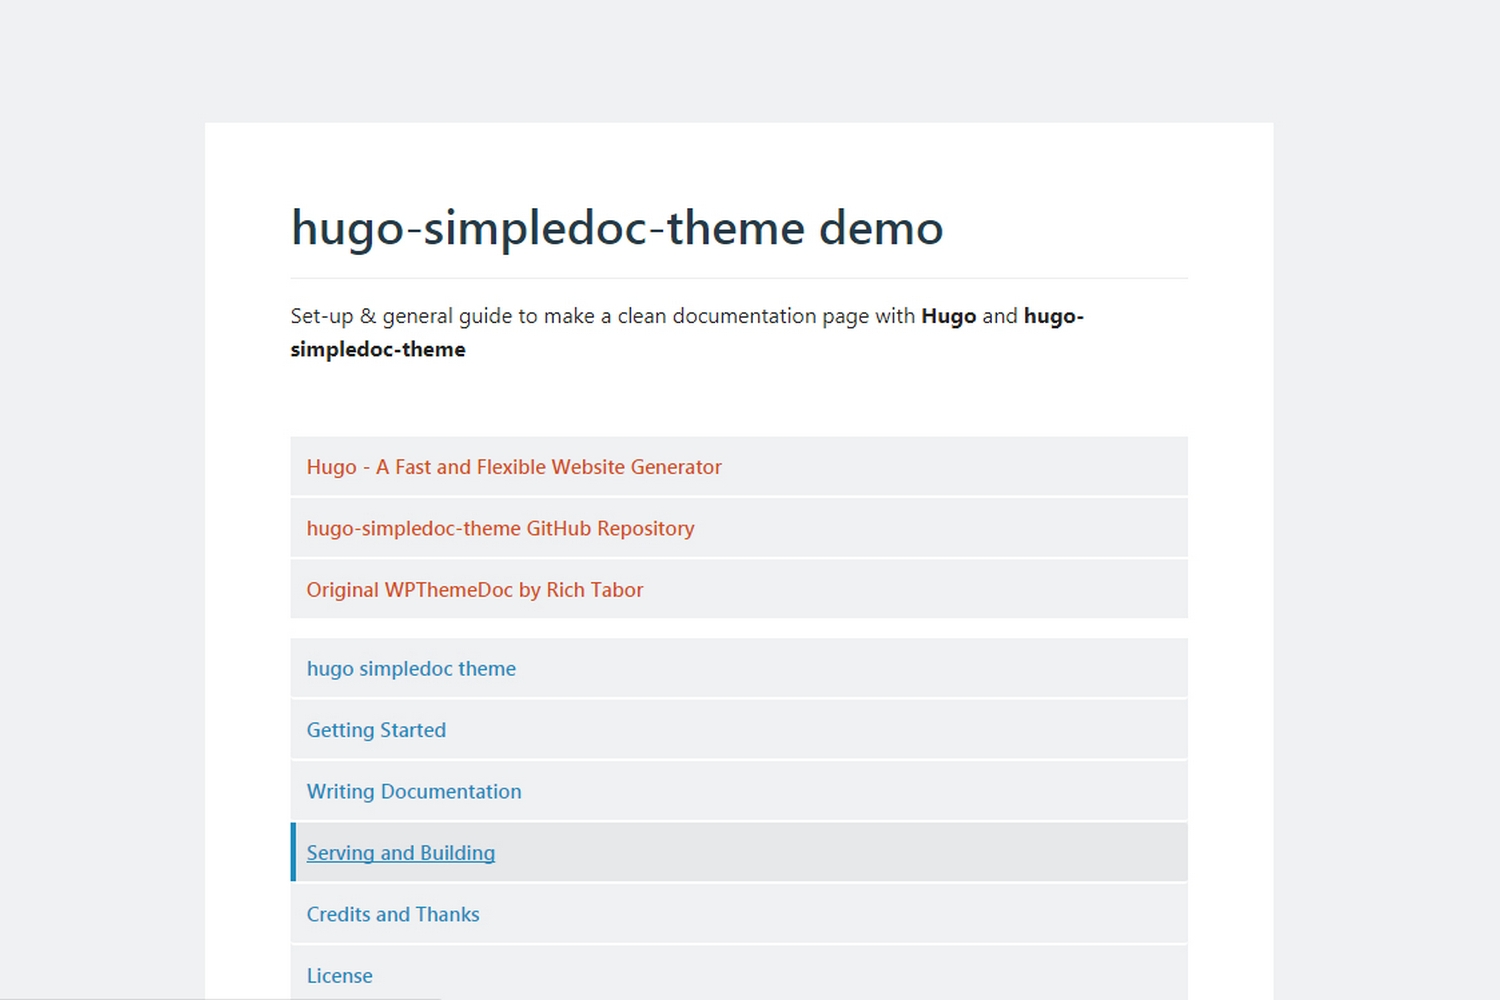 hugo-simpledoc-theme screenshot